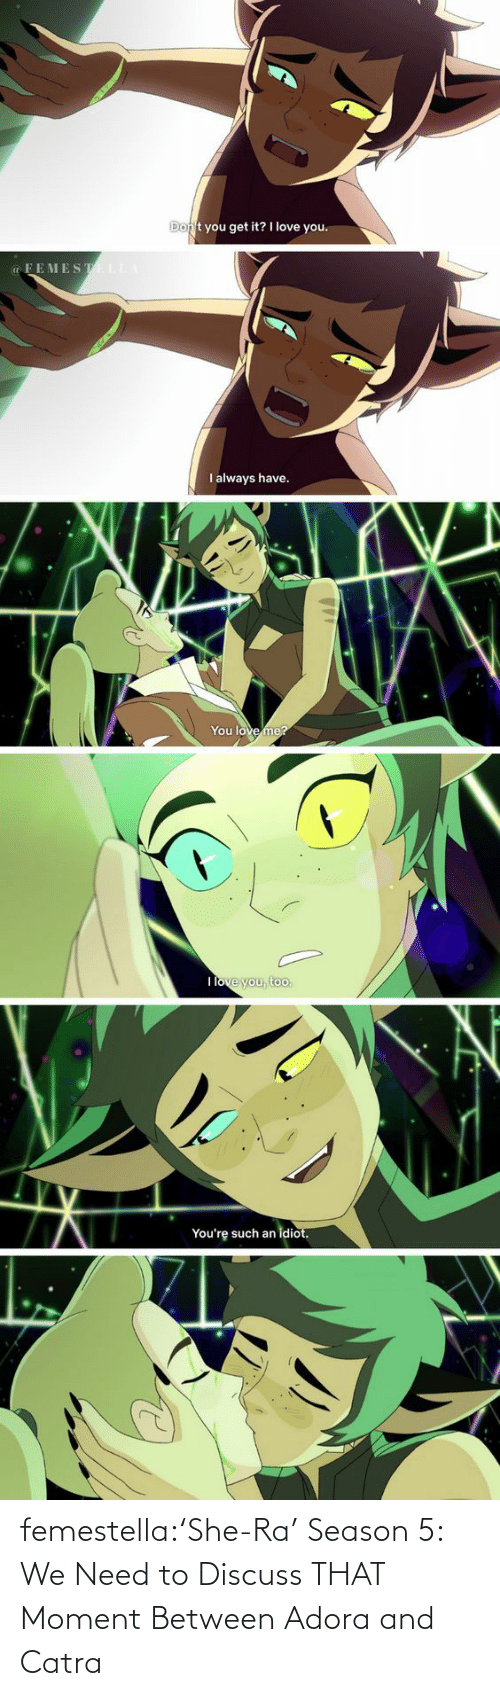 princesses: femestella:'She-Ra' Season 5: We Need to Discuss THAT Moment Between Adora and Catra